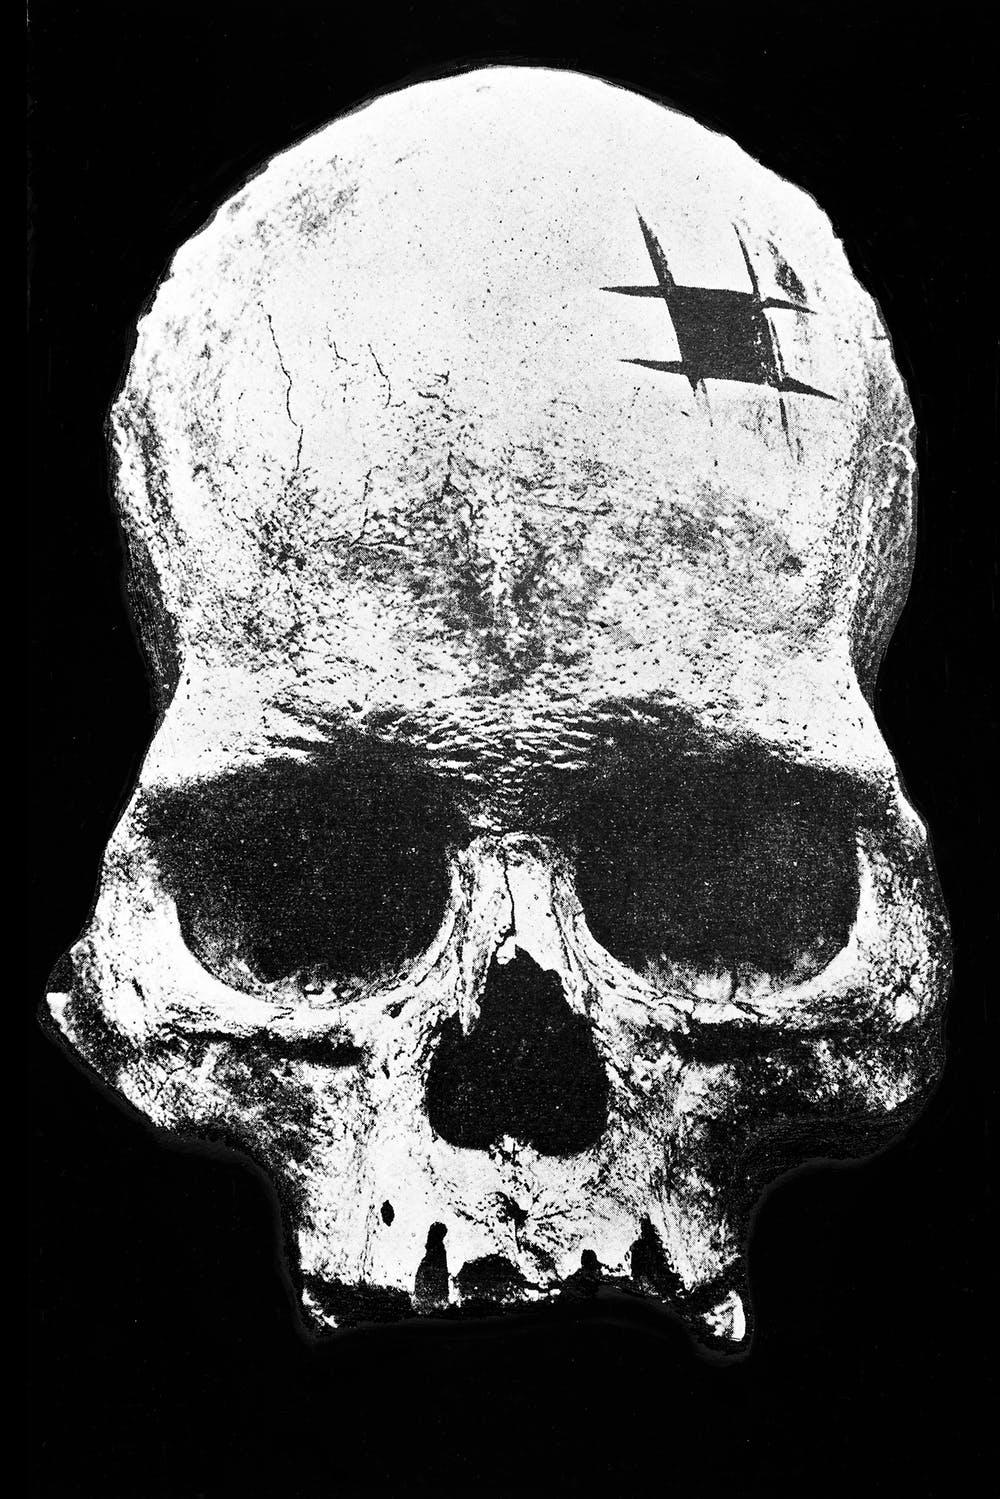 Inca skull showing trepanning